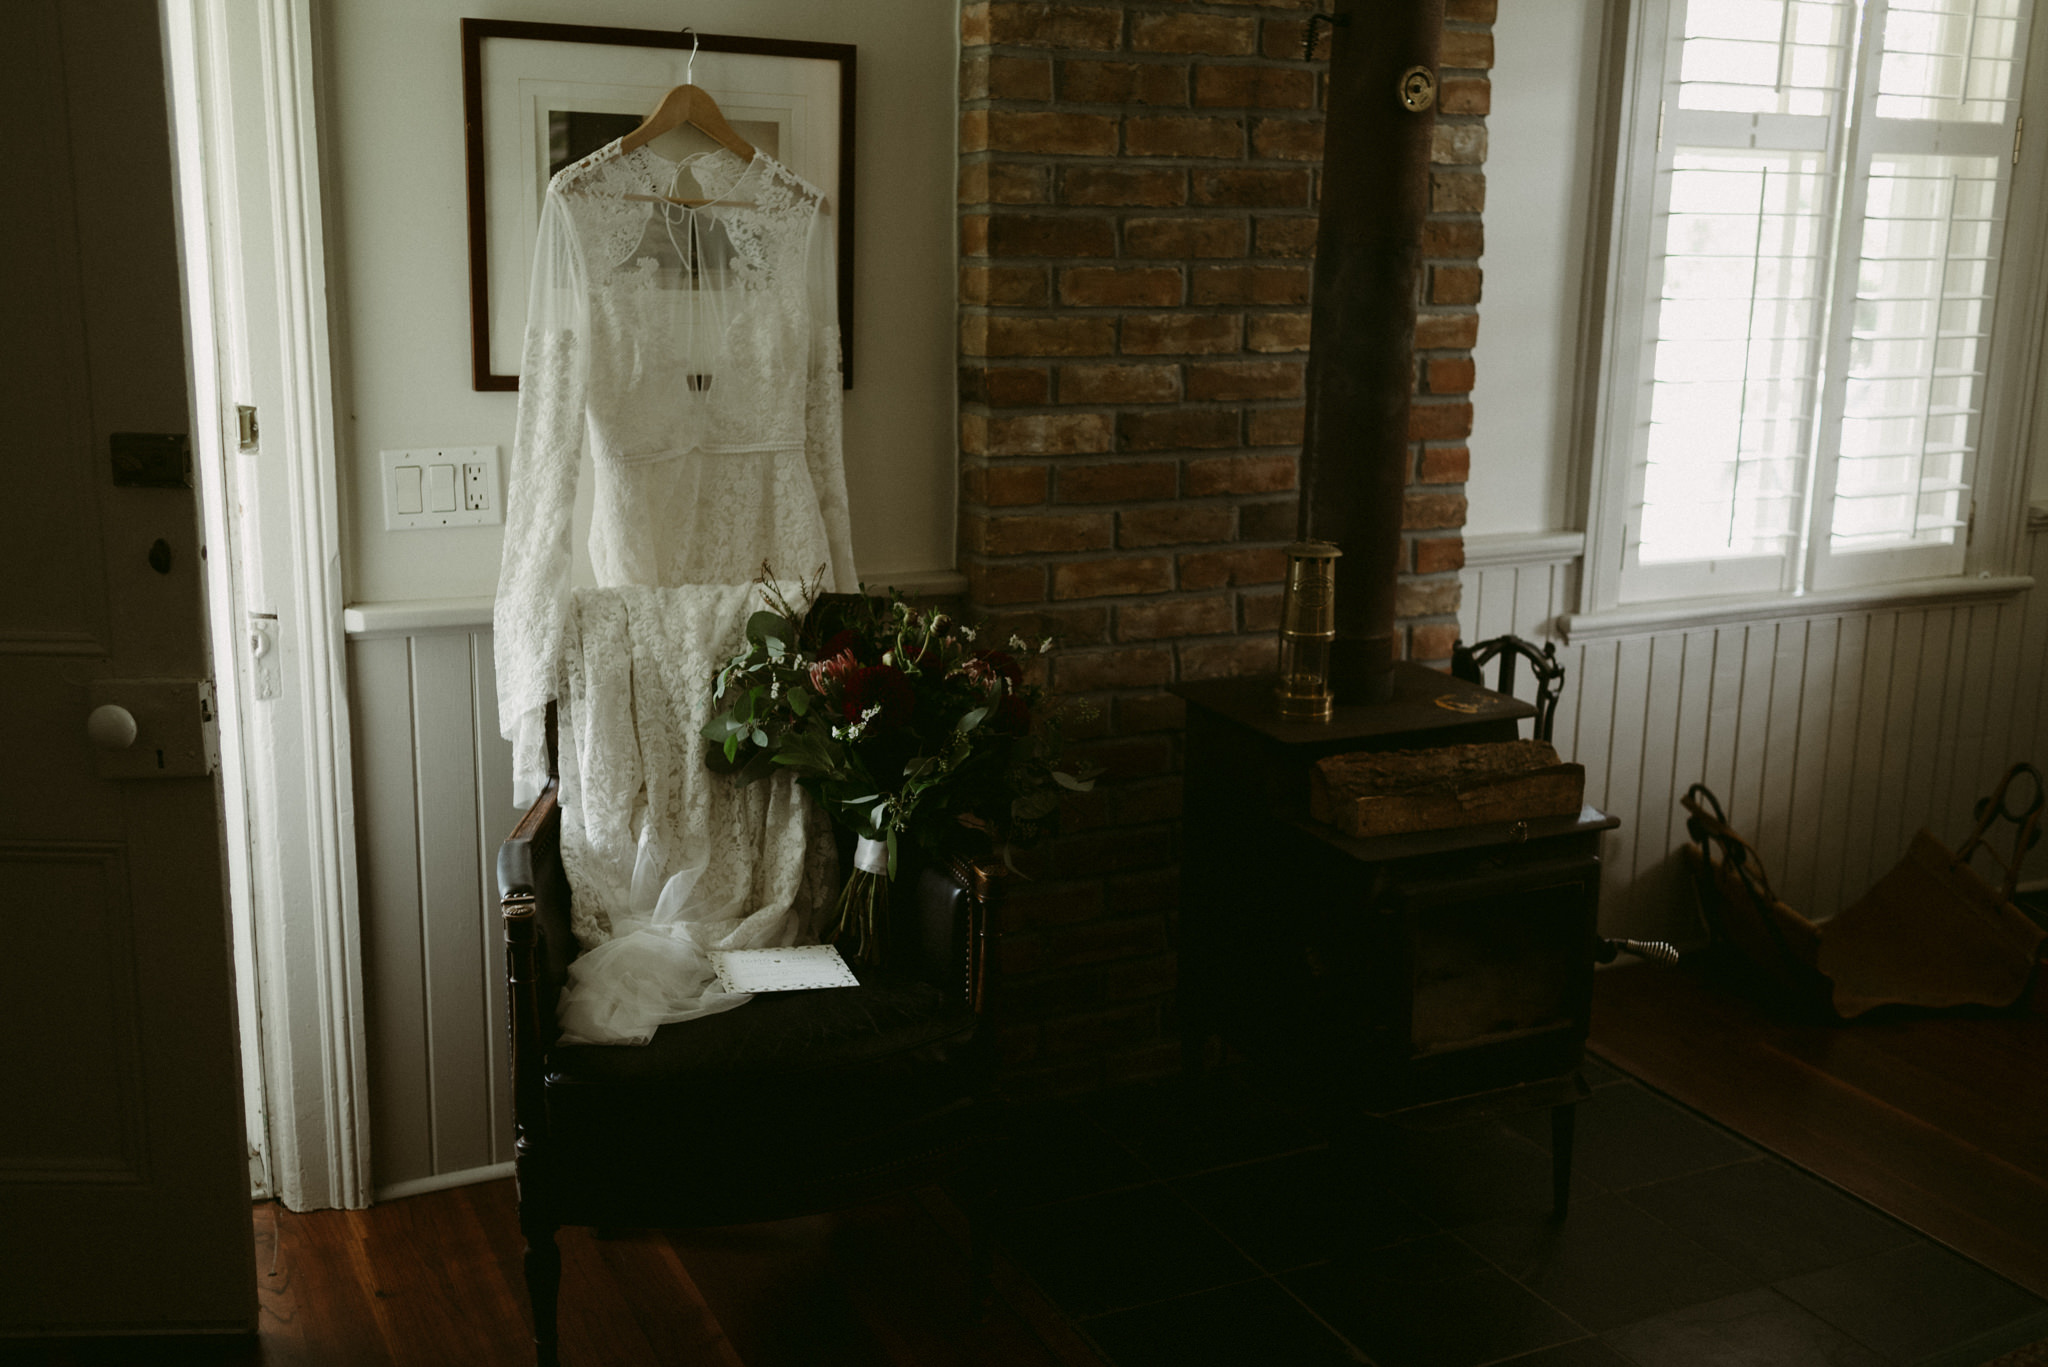 Lace Rue de Seine wedding dress hanging inside farm house